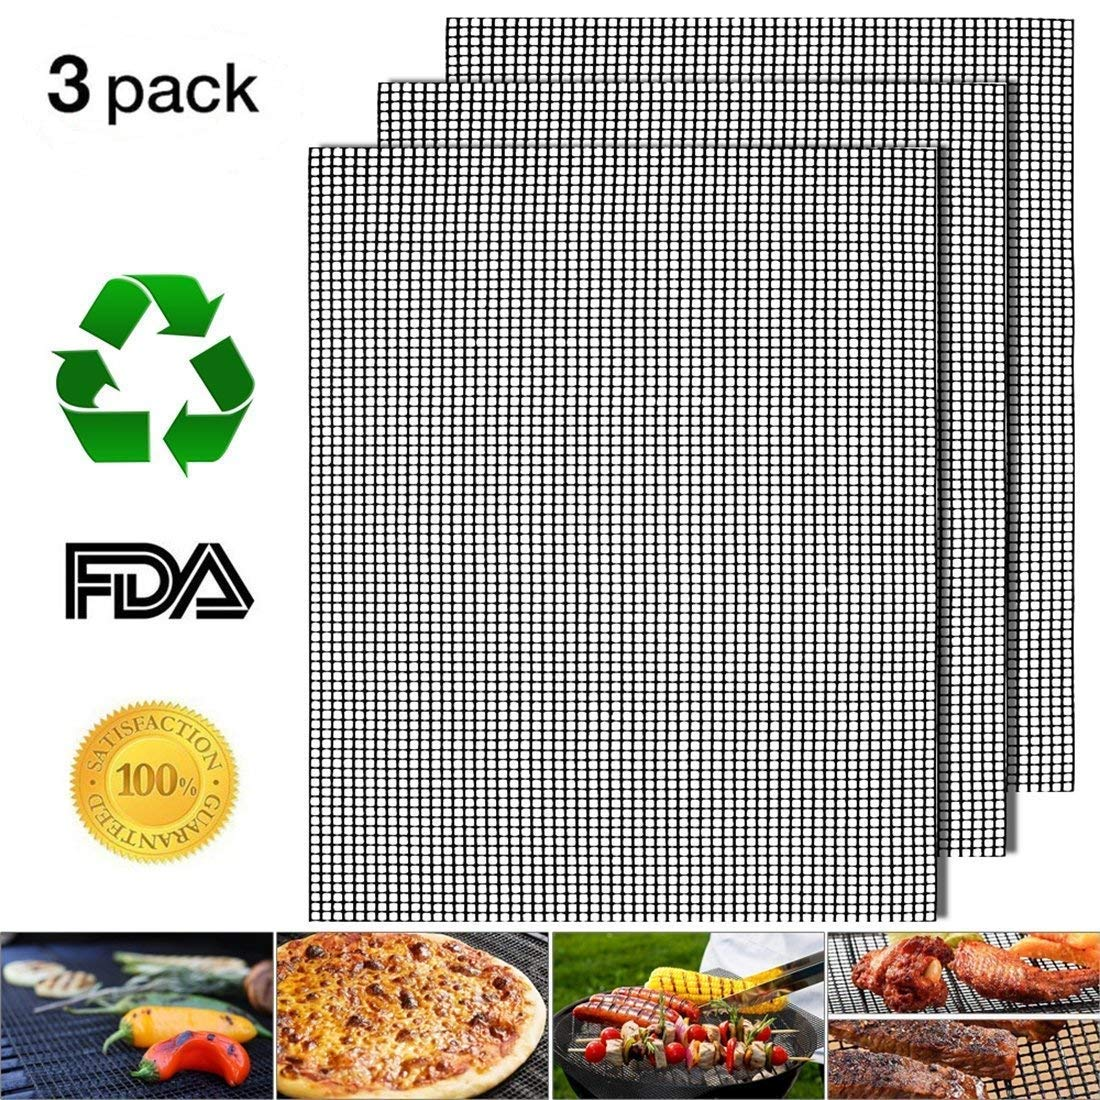 Nonstick Barbecue Grill Mesh Mat Set of 3, BBQ Grilling & Baking Sheet Liner, Reusable Grill Accessories for Grilled Vegetables/Fish/Fajitas/Shrimp, Use on Gas, Charcoal, Electric Barbecue - 17'' x 13'' by YEAKOO